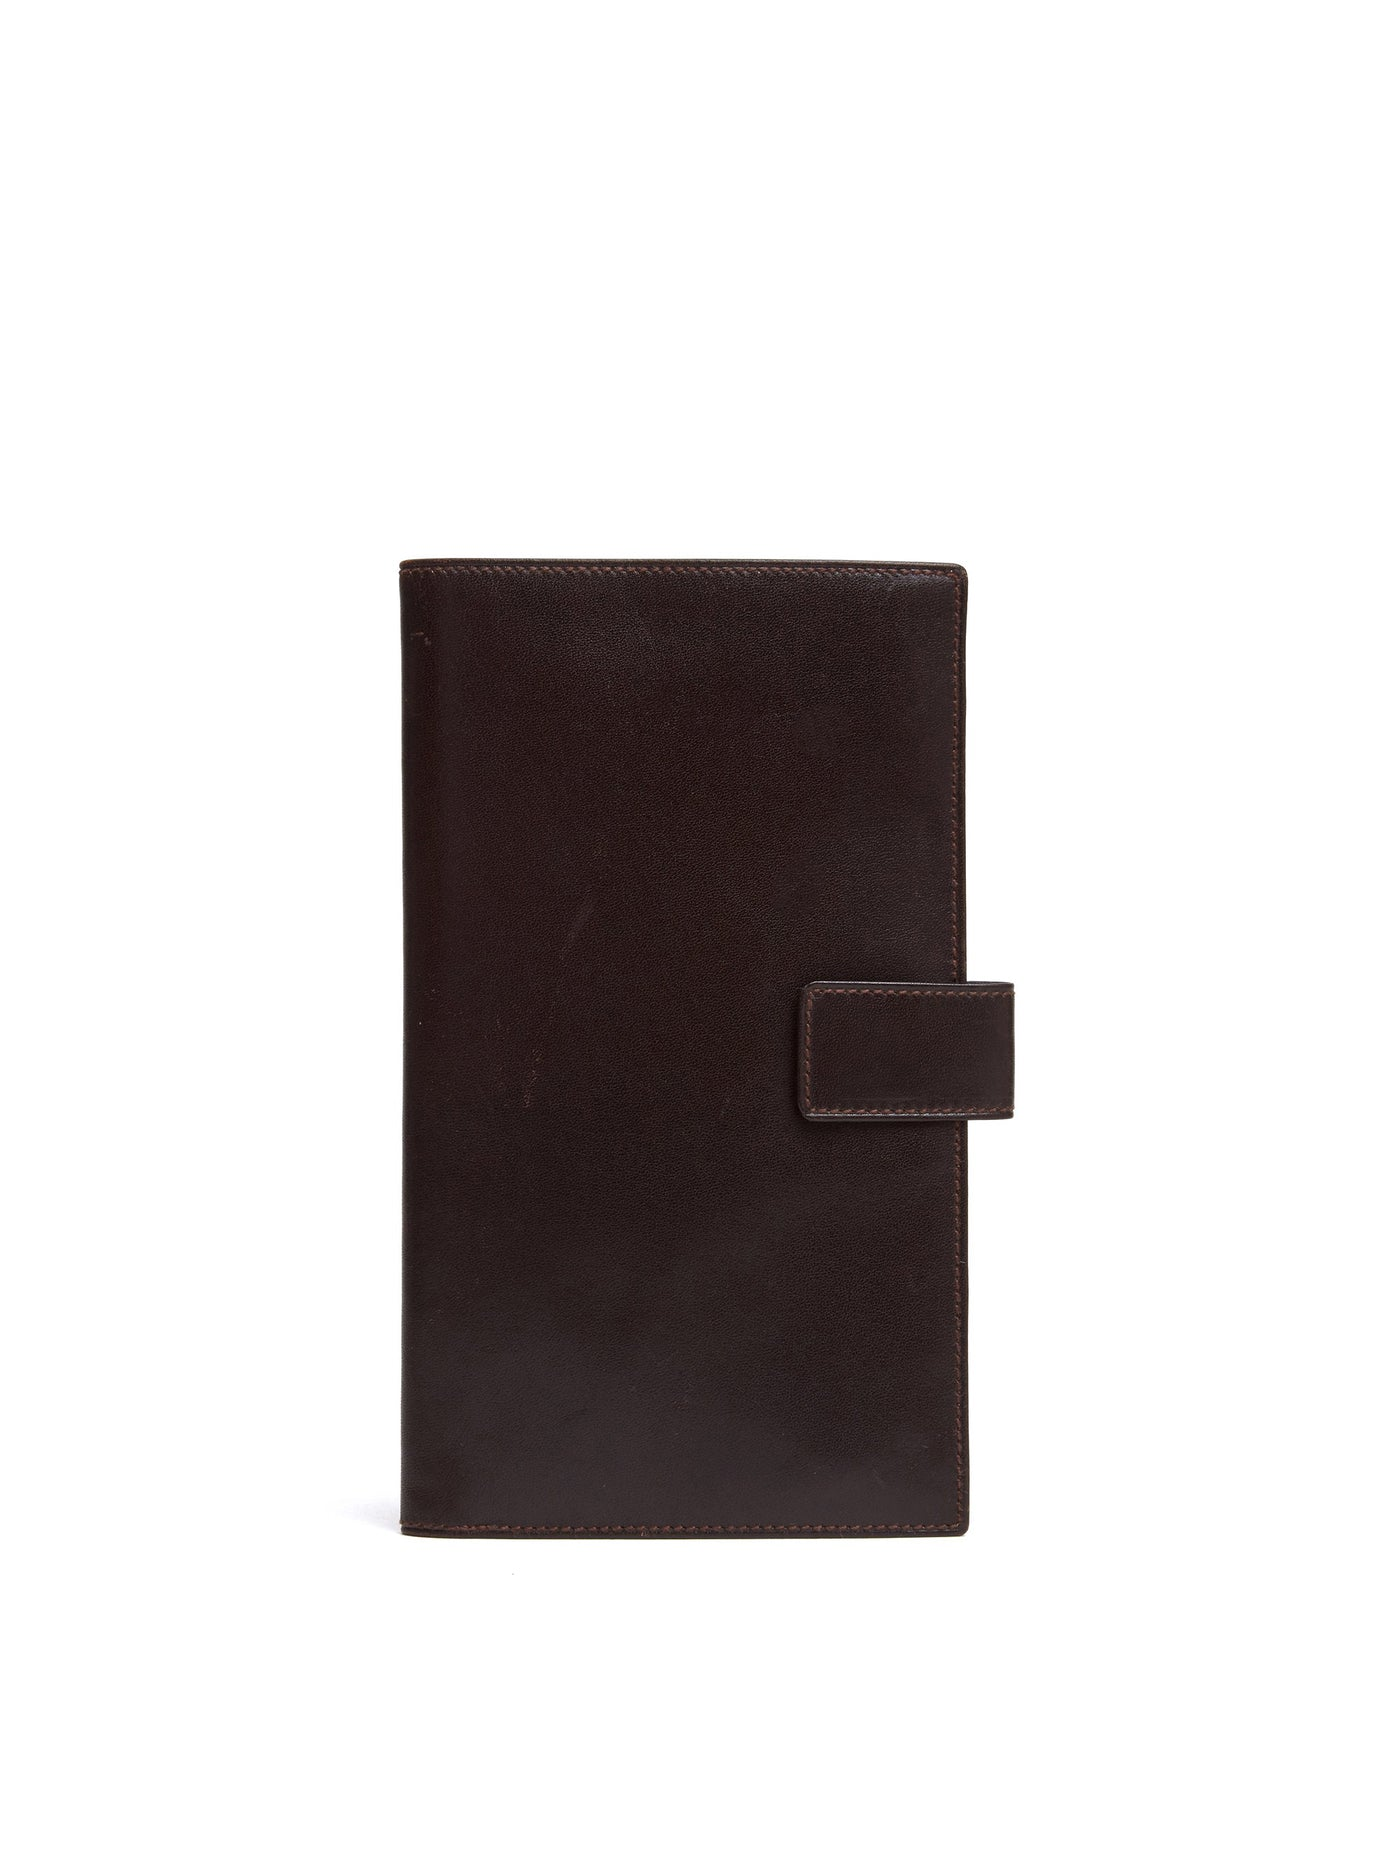 Mark Cross Vintage Leather Travel Wallet Chocolate Front